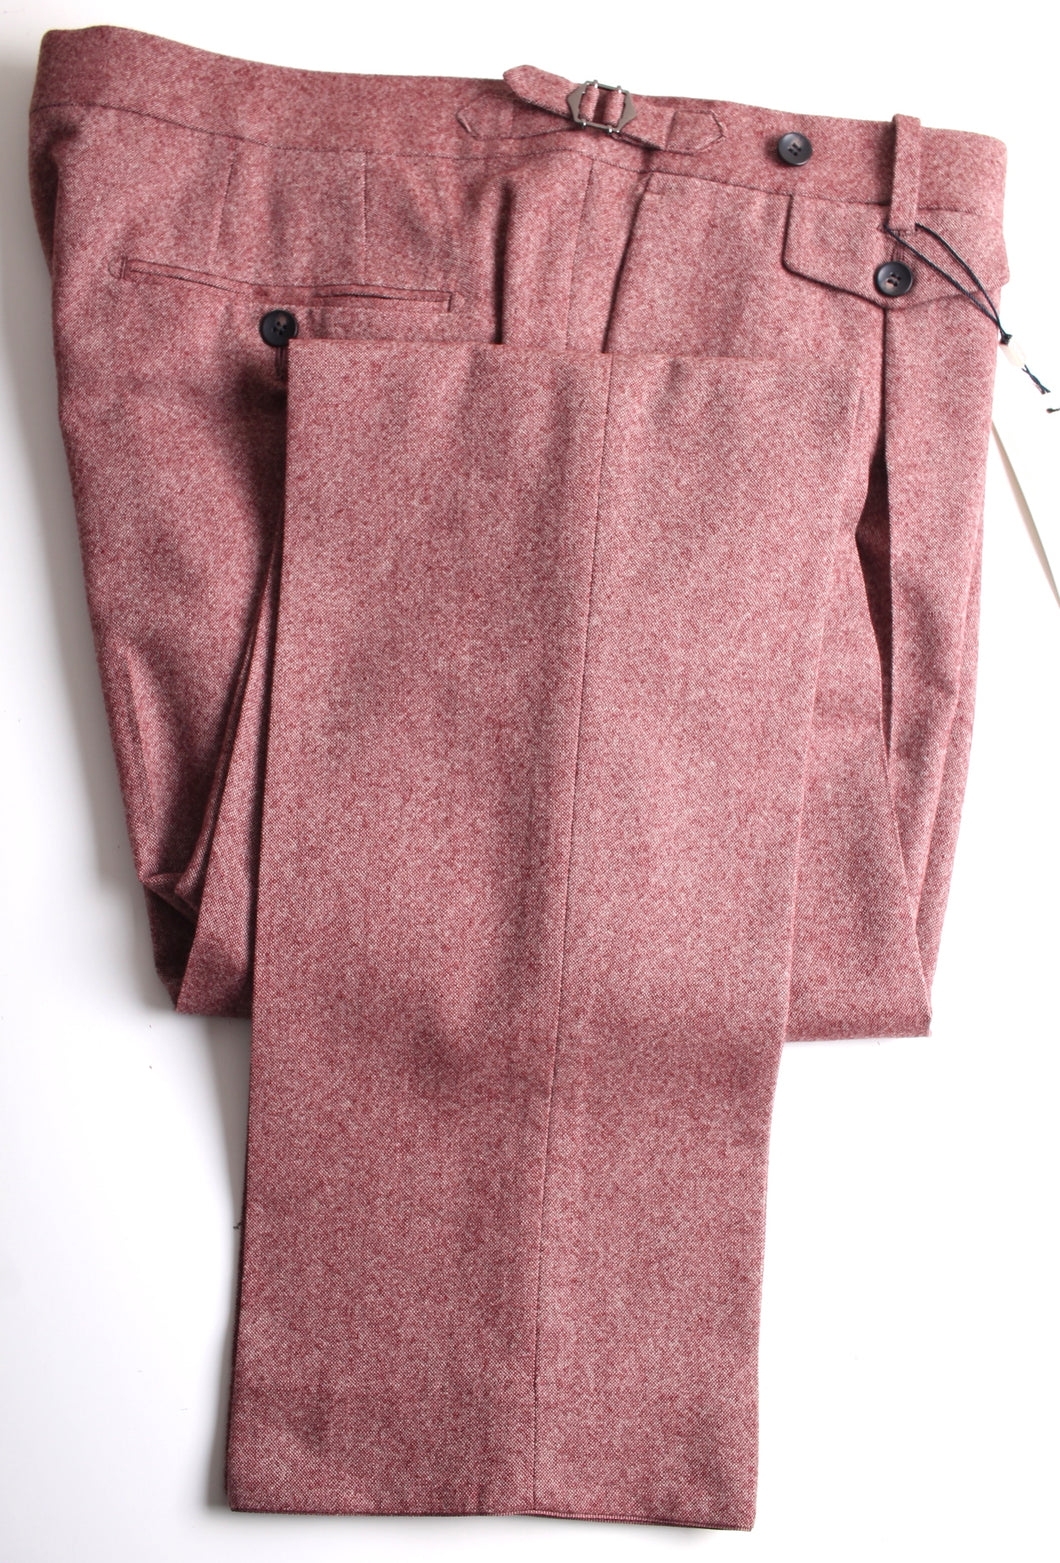 New Suitsupply BRENTWOOD Pink Wool and Cashmere Trousers - Size 46R (40.2 Inches)